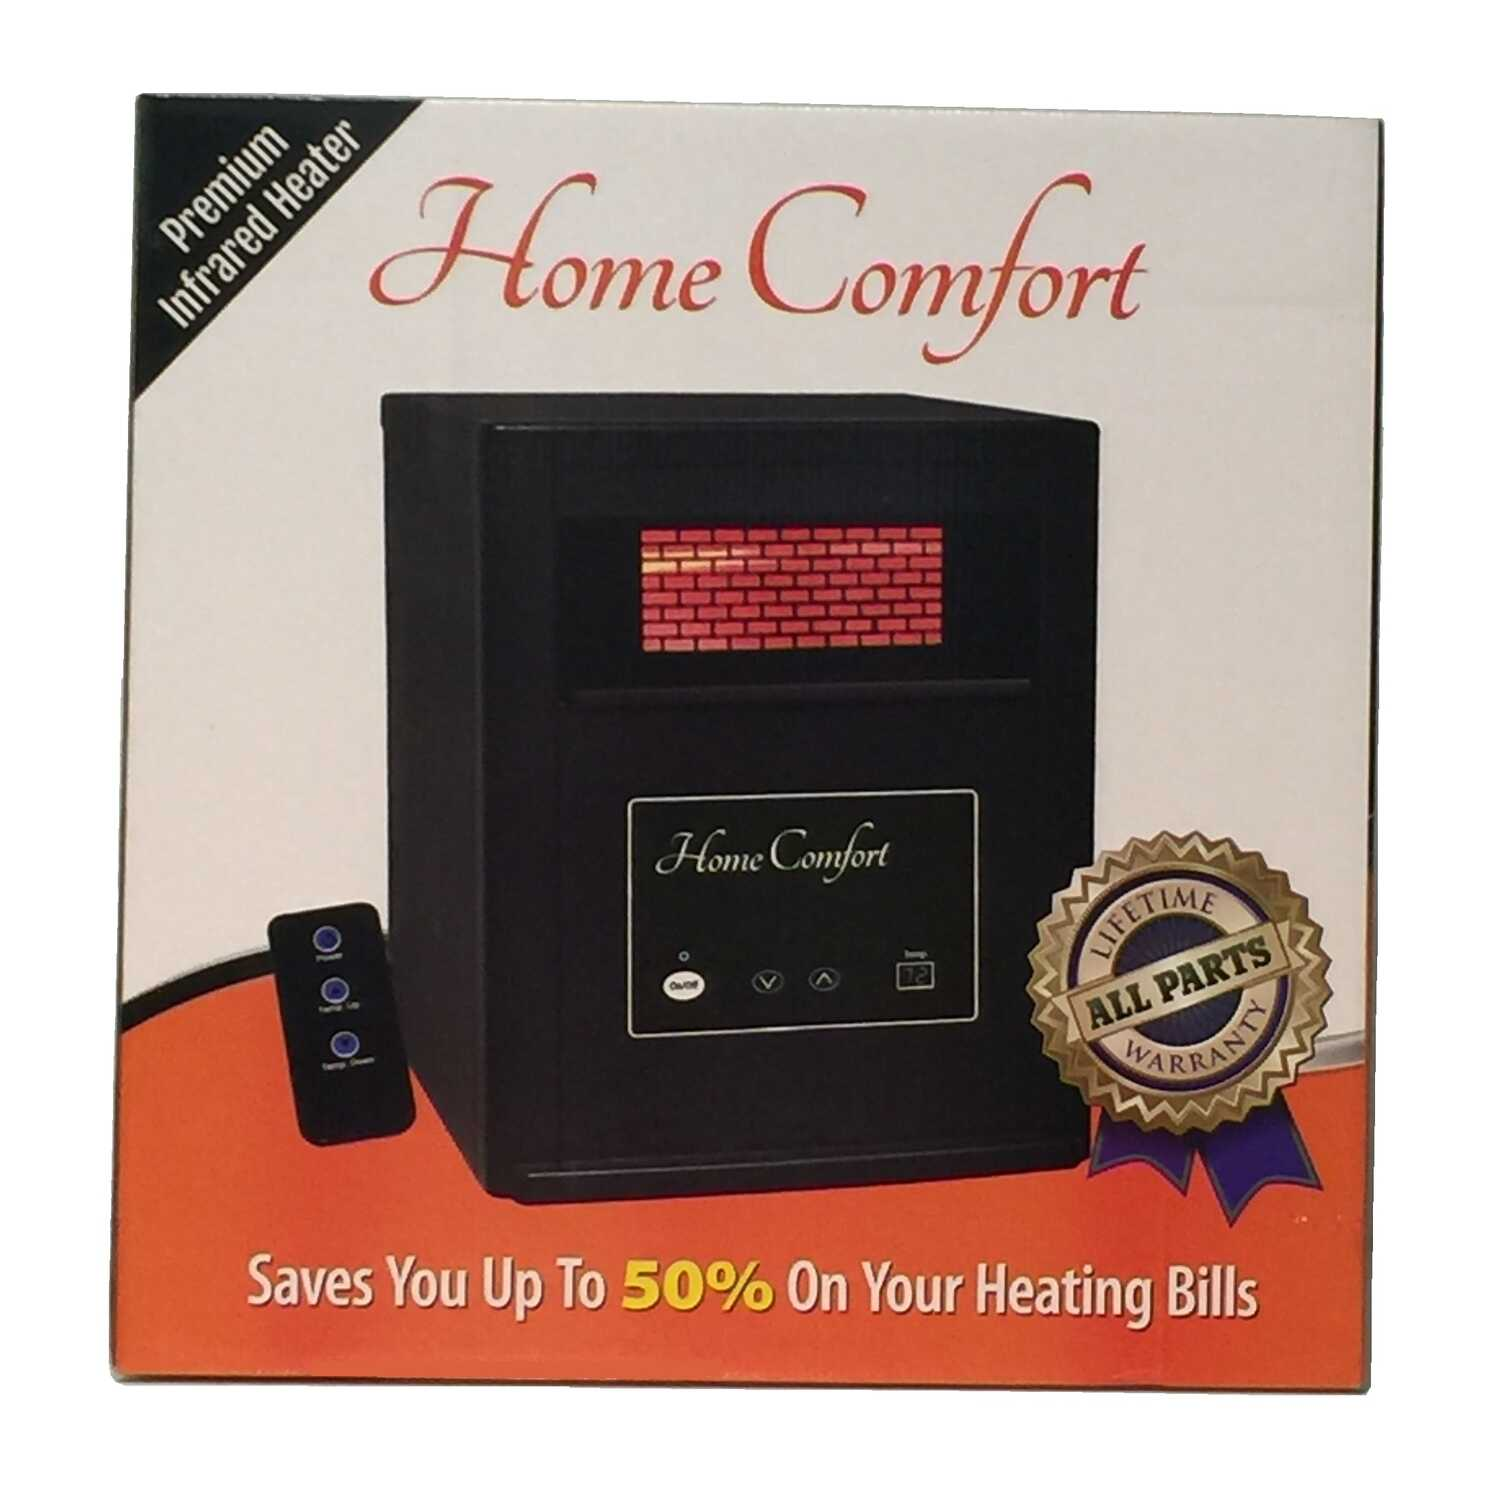 Home Comfort  1500  1500 sq. ft. Electric  Infrared  Portable Heater with Remote  5200 BTU